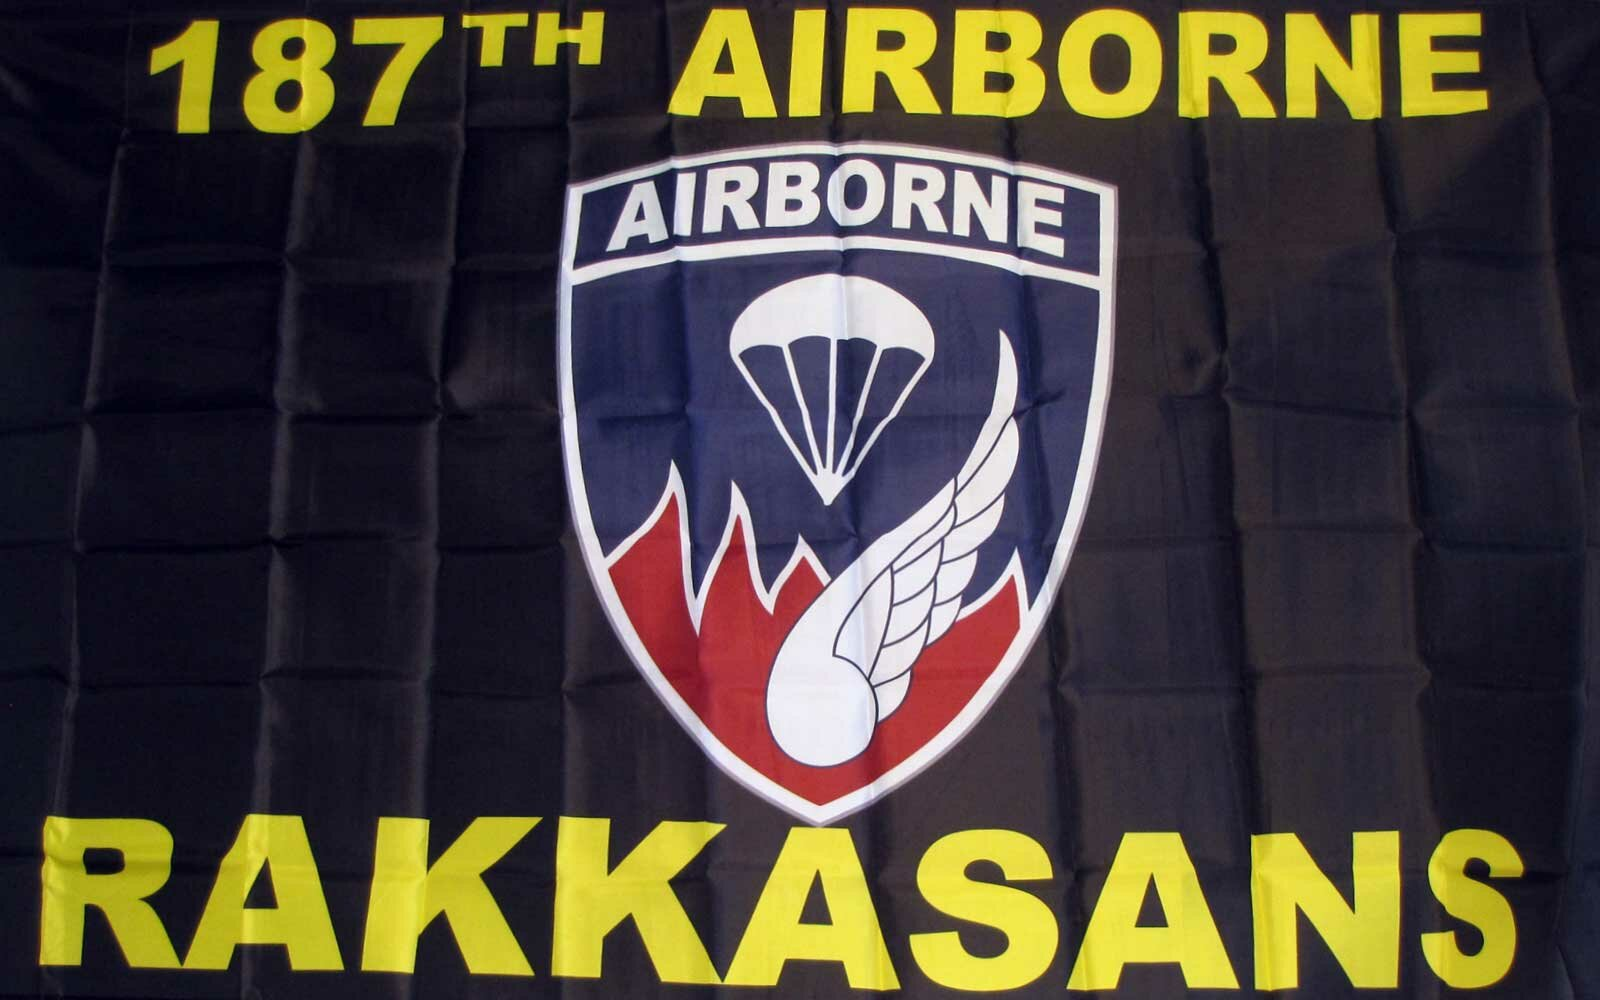 Neoplex 187th Airborne Rakkasans Polyester 36 X 60 In House Flag Wayfair